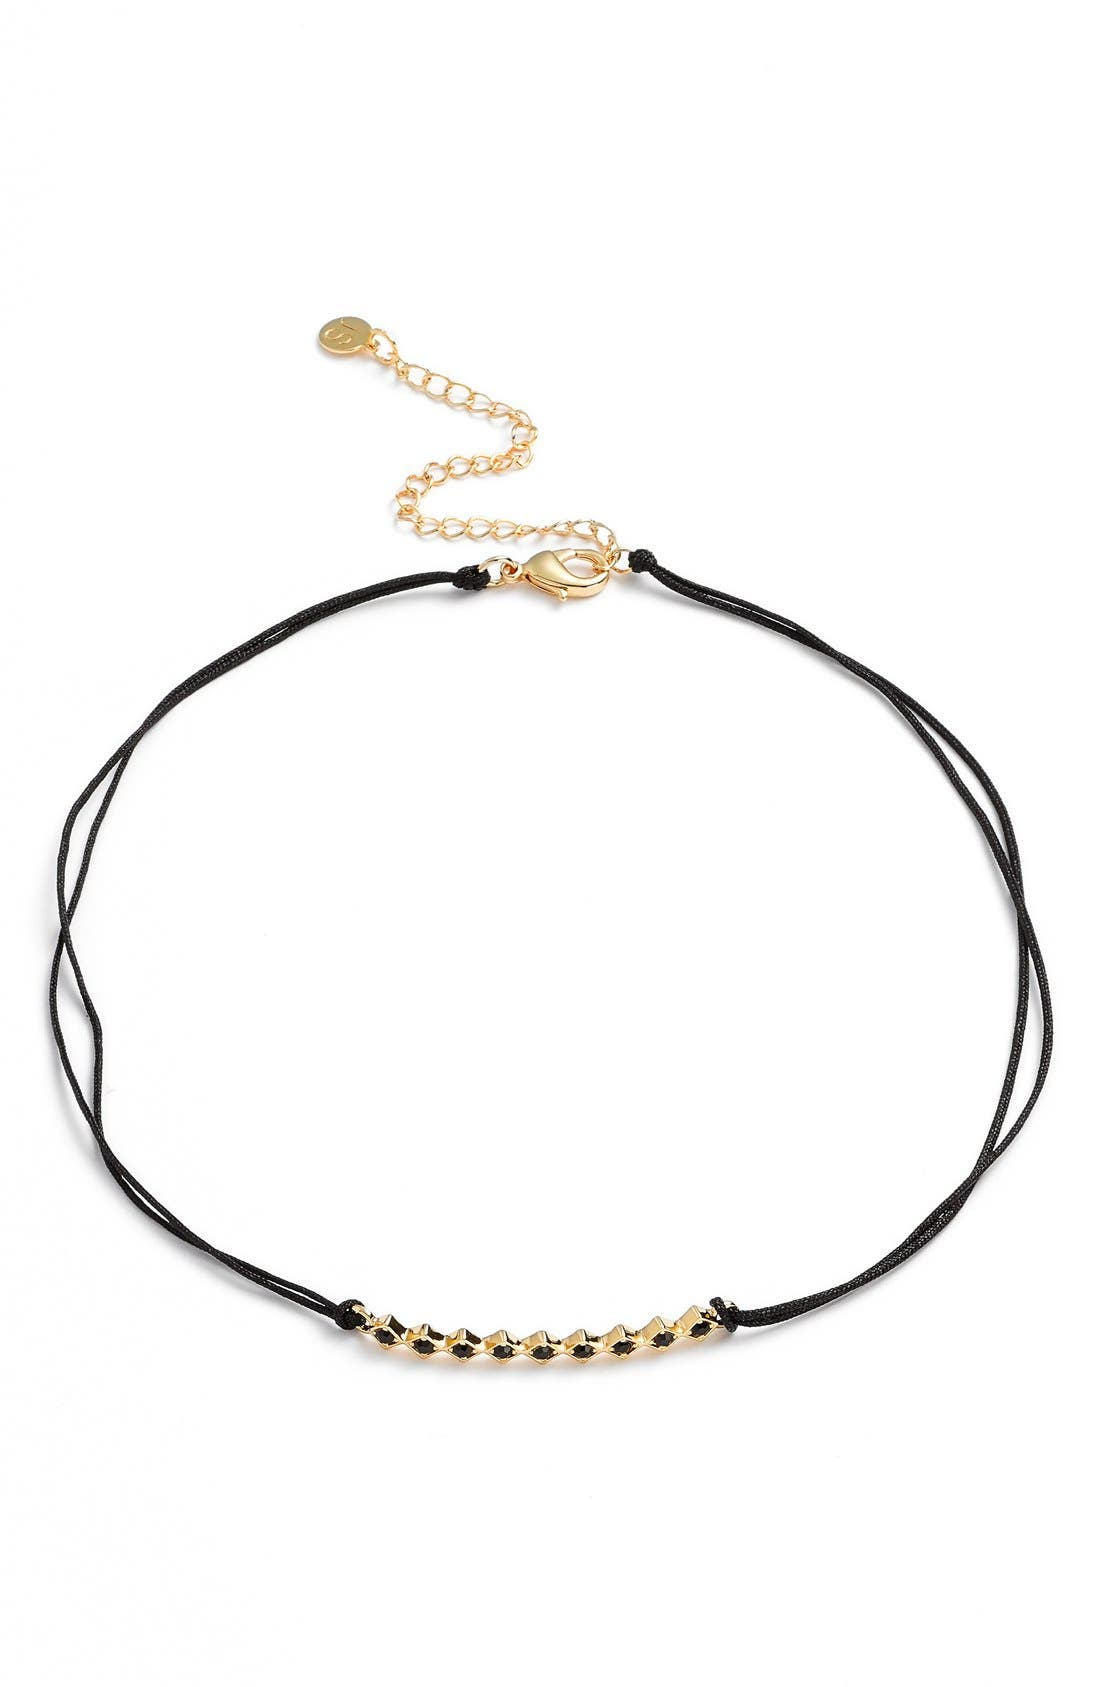 'Tulum' Crystal Bar Pendant Choker,                             Alternate thumbnail 2, color,                             Black/ Yellow Gold/ Black